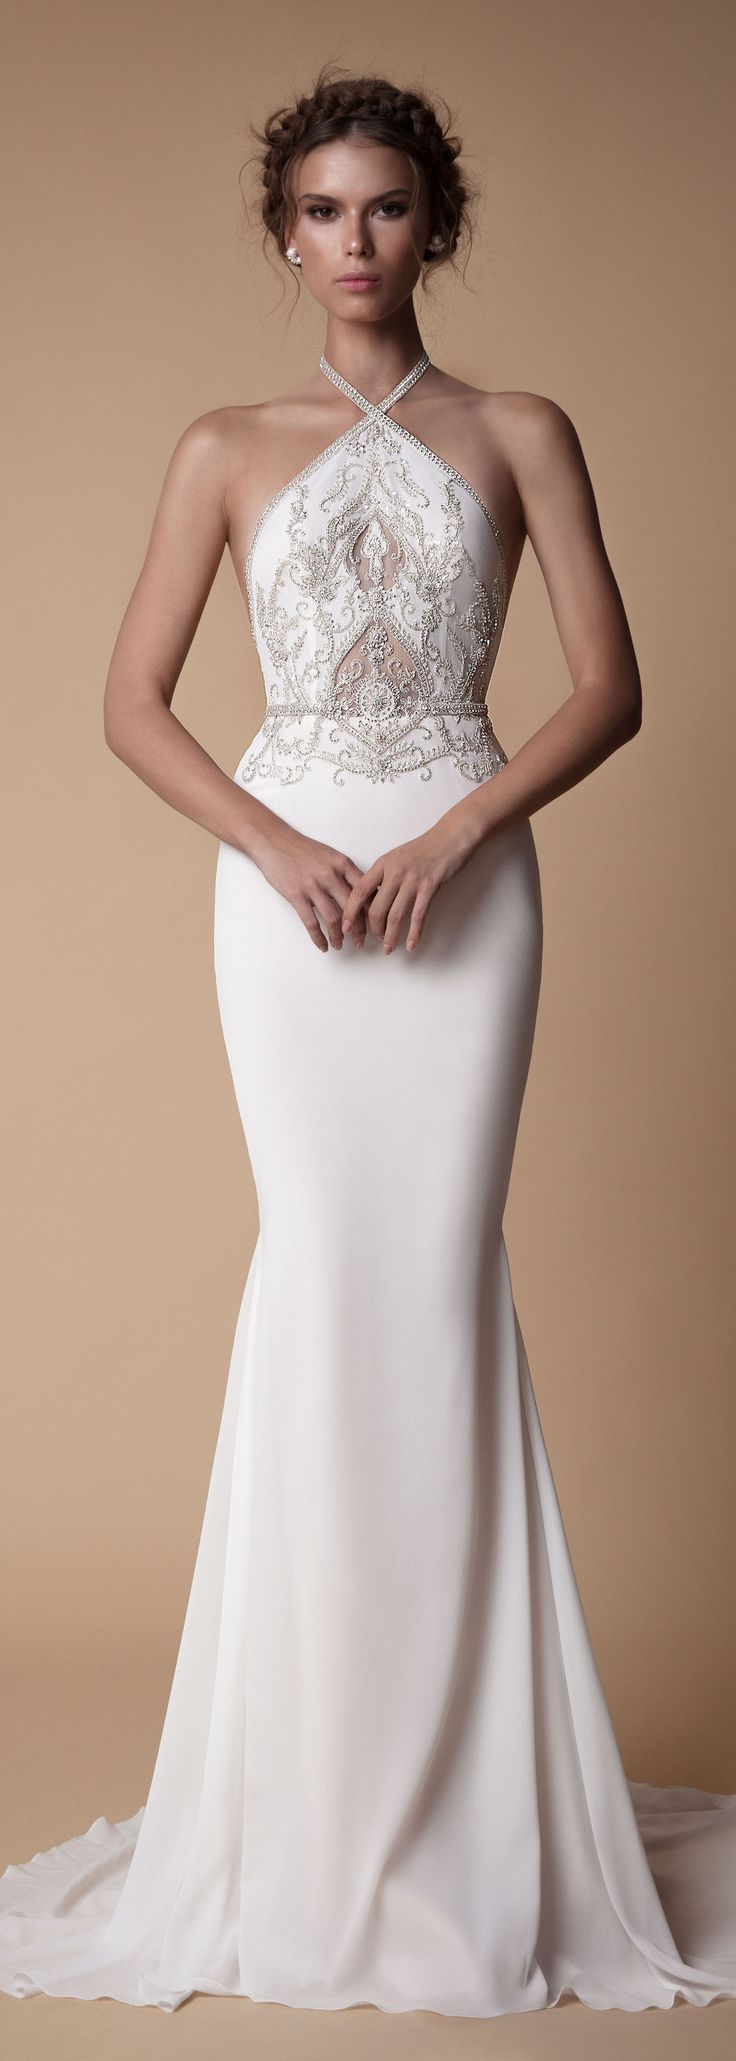 The beautiful BONITA Style from the new #MUSEbyBerta collection <3